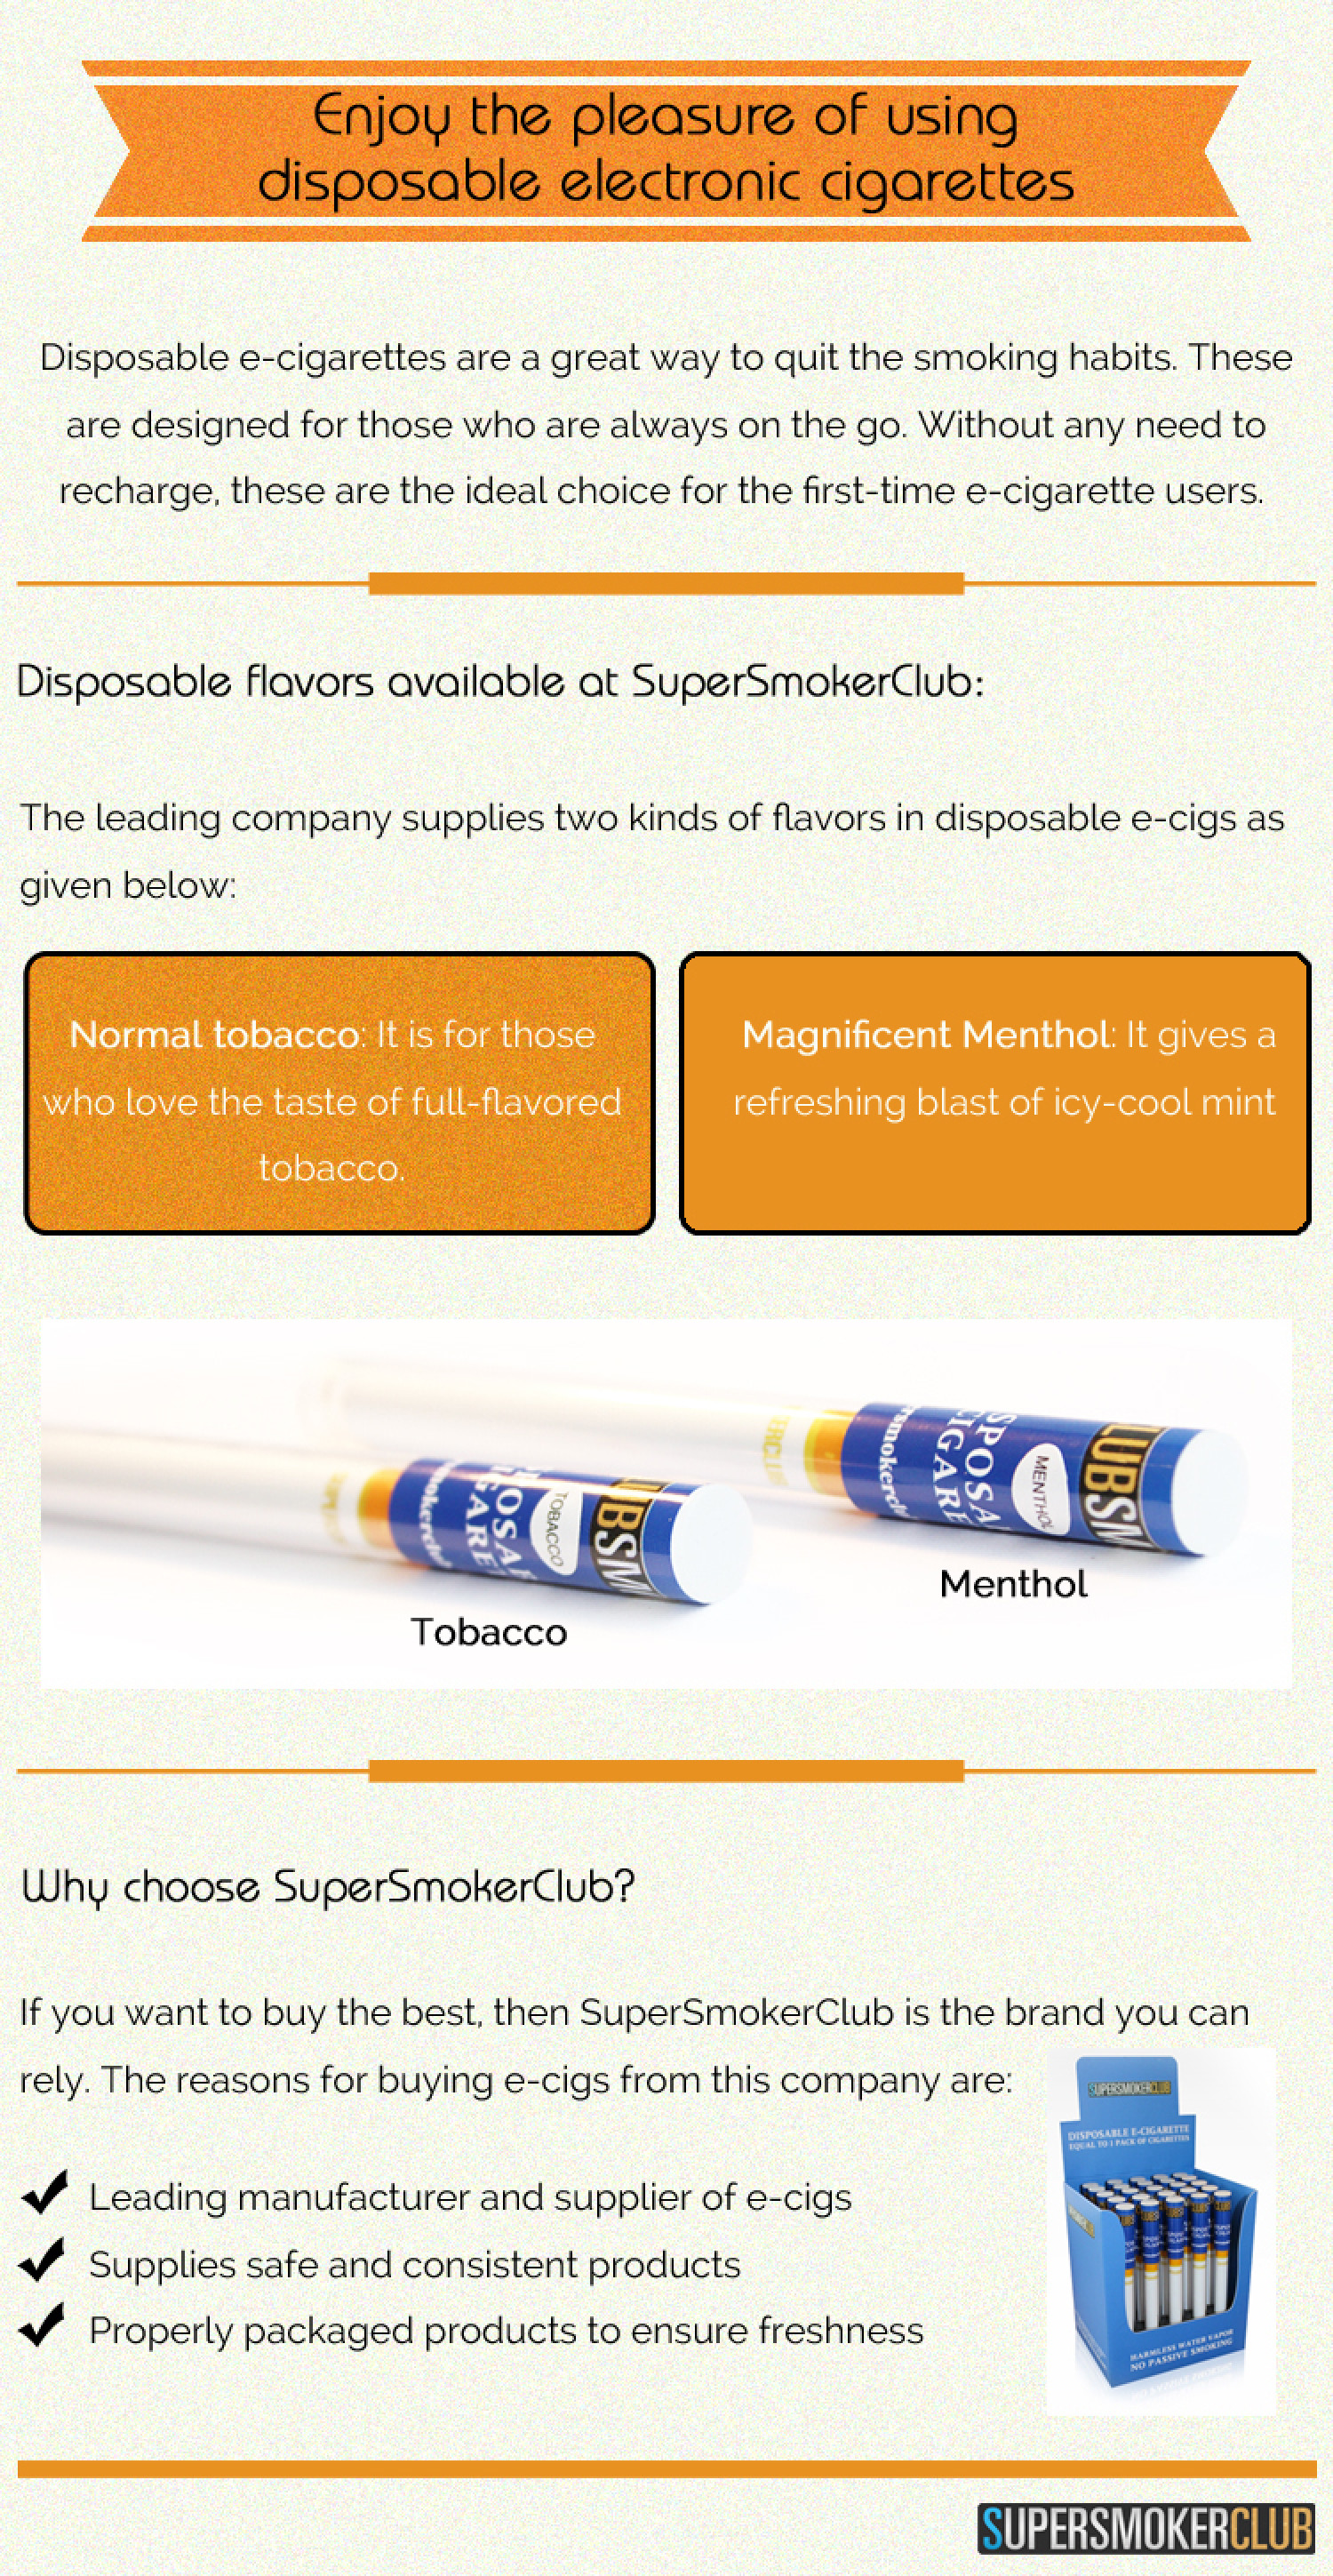 Enjoy the pleasure of using disposable electronic cigarettes Infographic